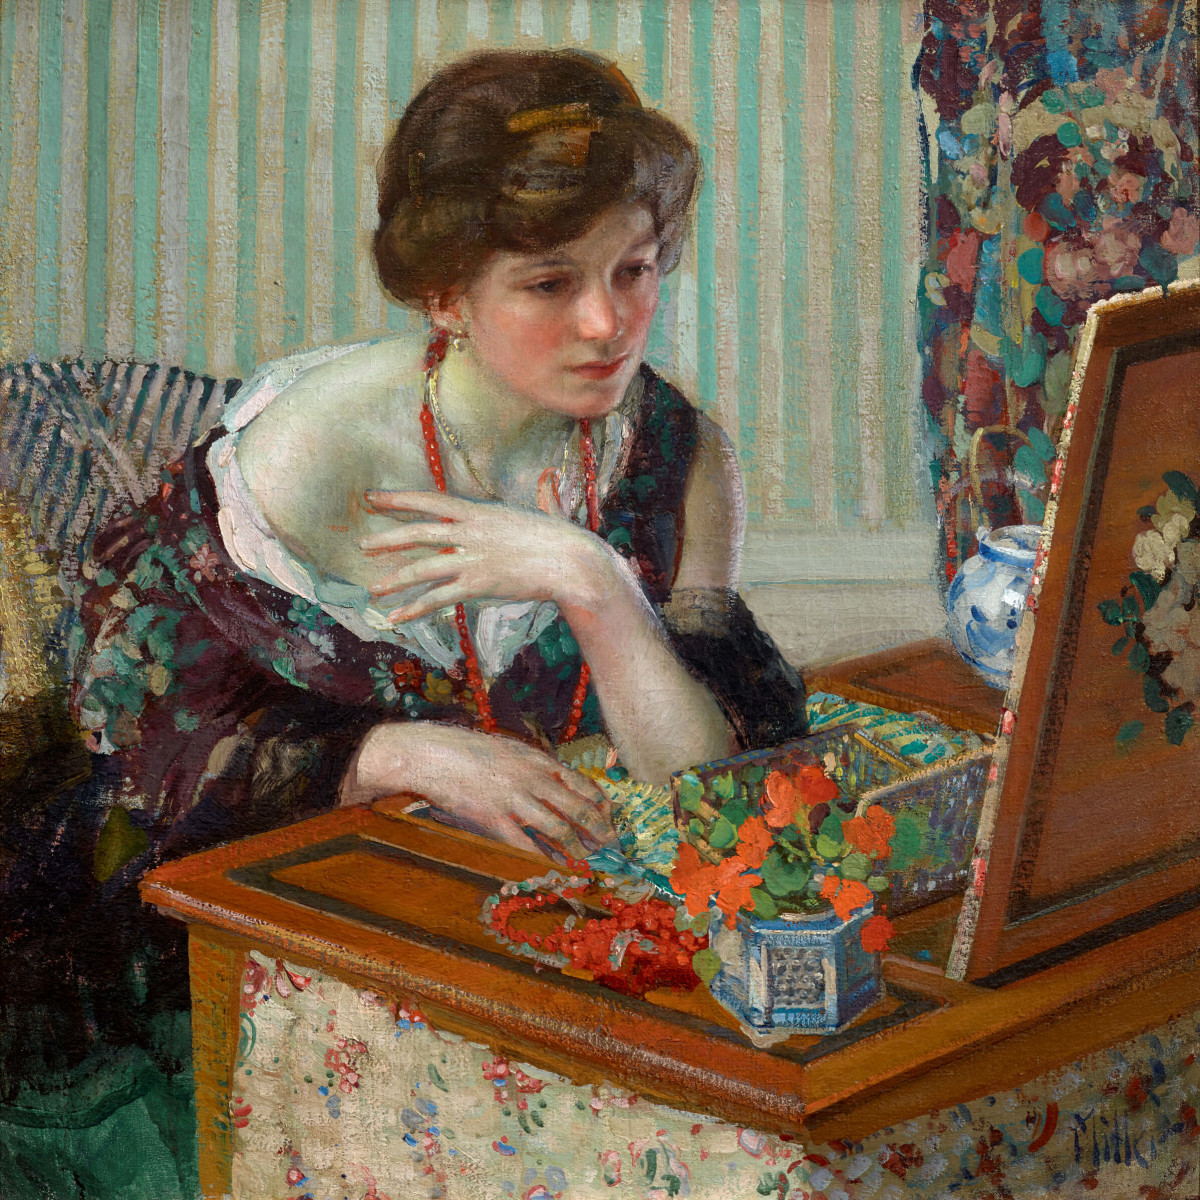 Two Centuries of American Still-Life Painting: Richard Edward Miller